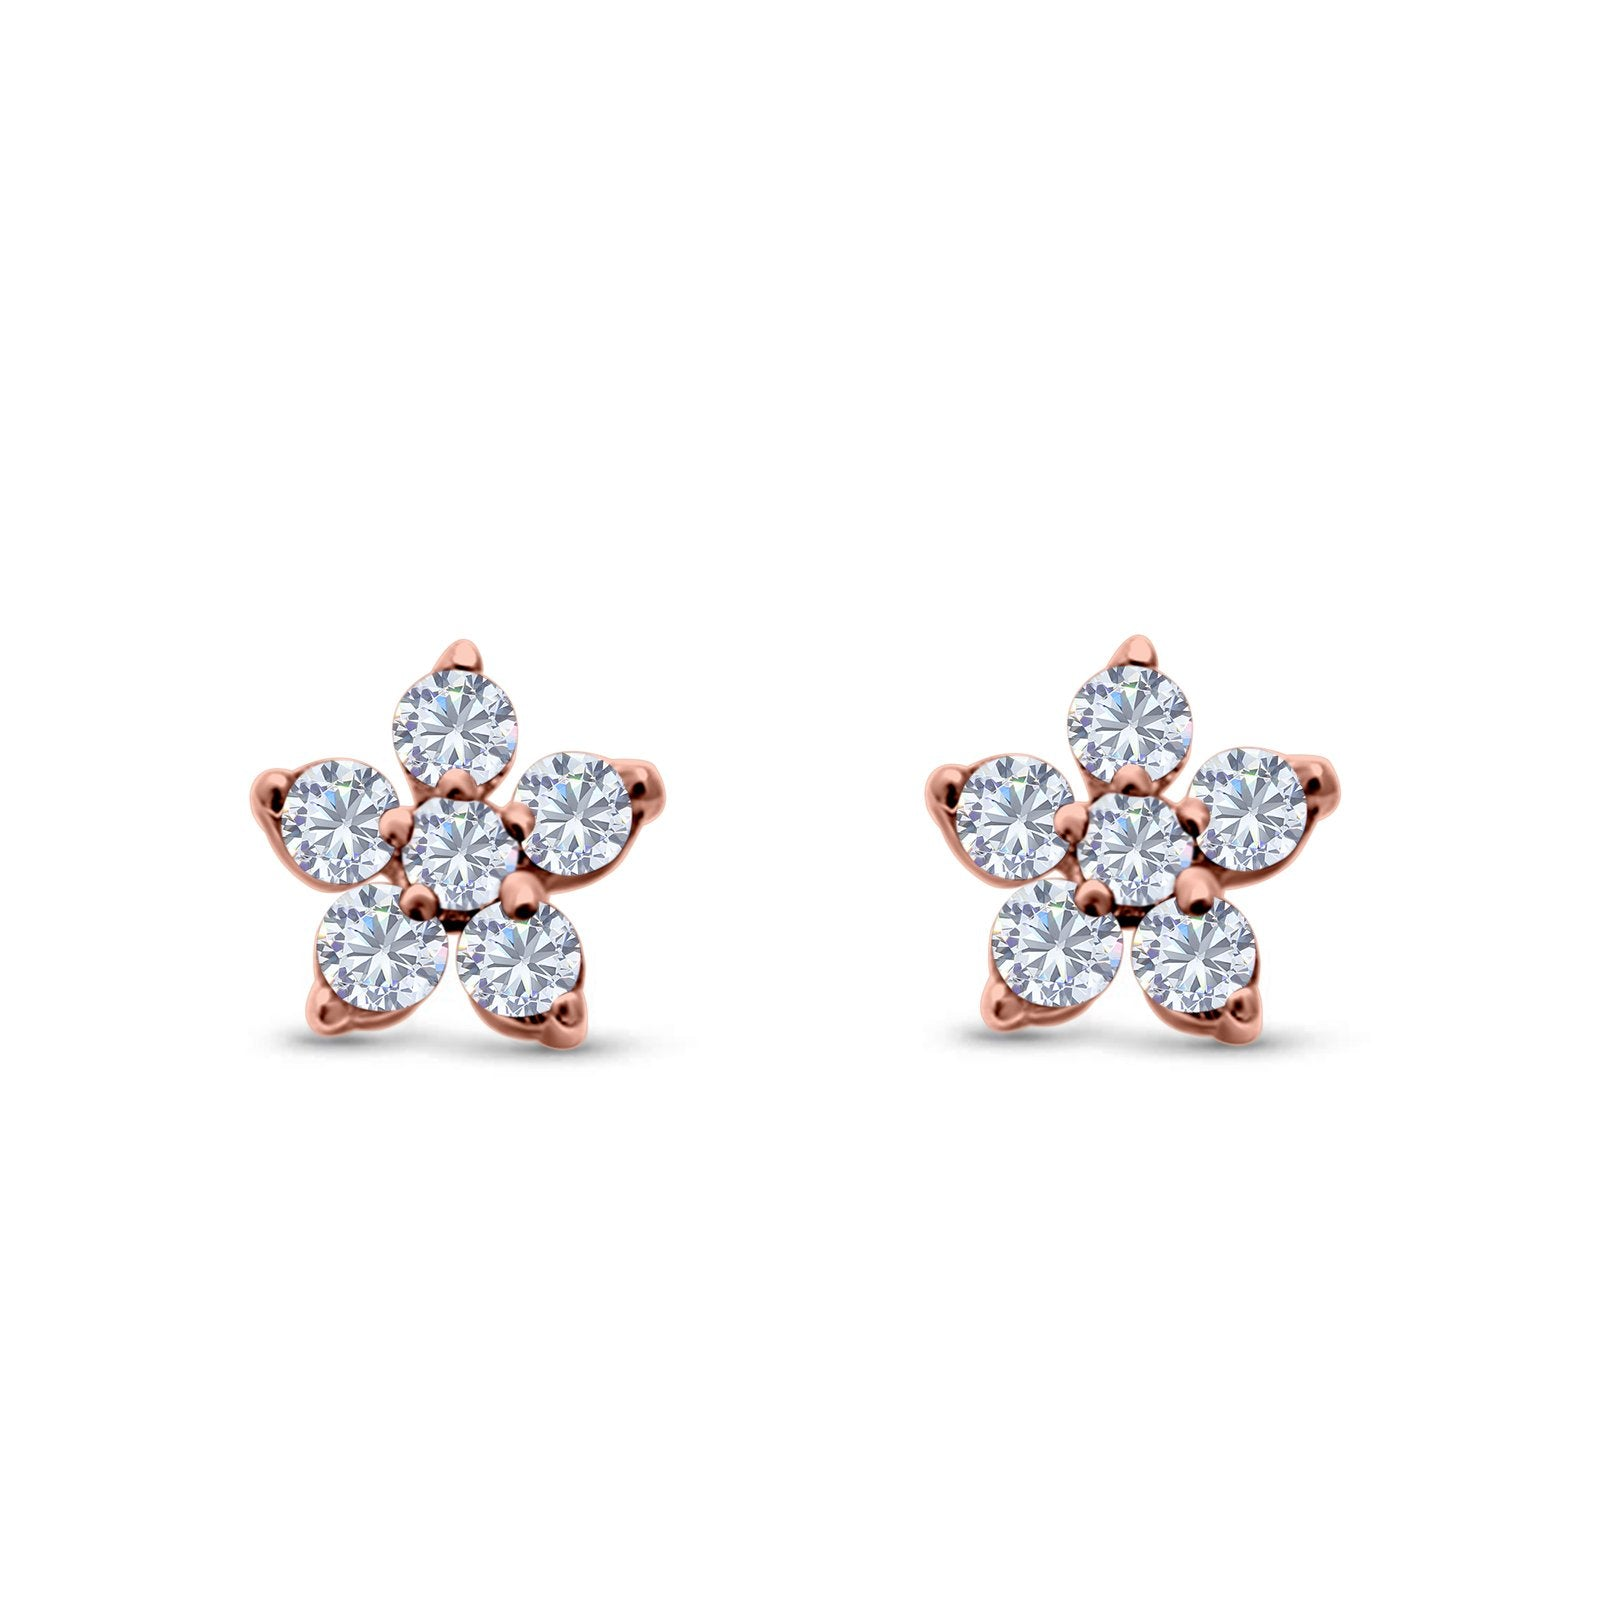 Cluster Flower Stud Earrings Round Rose Tone, Simulated CZ 925 Sterling Silver